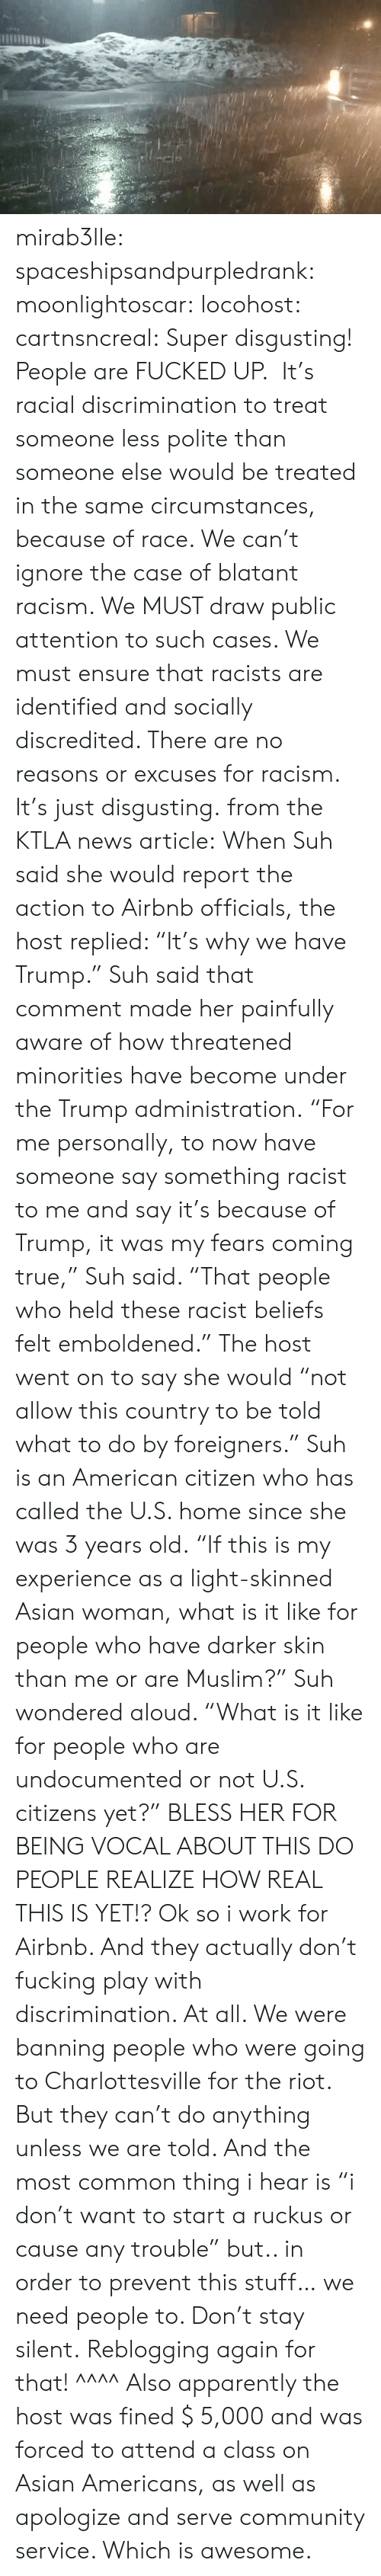 """Apparently, Asian, and Community: mirab3lle:  spaceshipsandpurpledrank:   moonlightoscar:  locohost:  cartnsncreal:    Super disgusting! People are FUCKED UP. It's racial discrimination to treat someone less polite than someone else would be treated in the same circumstances, because of race. We can't ignore the case of blatant racism. We MUST draw public attention to such cases. We must ensure that racists are identified and socially discredited. There are no reasons or excuses for racism. It's just disgusting.  from the KTLA news article:  When Suh said she would report the action to Airbnb officials, the host replied: """"It's why we have Trump."""" Suh said that comment made her painfully aware of how threatened minorities have become under the Trump administration. """"For me personally, to now have someone say something racist to me and say it's because of Trump, it was my fears coming true,"""" Suh said. """"That people who held these racist beliefs felt emboldened."""" The host went on to say she would """"not allow this country to be told what to do by foreigners."""" Suh is an American citizen who has called the U.S. home since she was 3 years old. """"If this is my experience as a light-skinned Asian woman, what is it like for people who have darker skin than me or are Muslim?"""" Suh wondered aloud. """"What is it like for people who are undocumented or not U.S. citizens yet?""""    BLESS HER FOR BEING VOCAL ABOUT THIS DO PEOPLE REALIZE HOW REAL THIS IS YET!?   Ok so i work for Airbnb.  And they actually don't fucking play with discrimination. At all. We were banning people who were going to Charlottesville for the riot.  But they can't do anything unless we are told. And the most common thing i hear is """"i don't want to start a ruckus or cause any trouble"""" but.. in order to prevent this stuff… we need people to. Don't stay silent.   Reblogging again for that! ^^^^ Also apparently the host was fined $ 5,000 and was forced to attend a class on Asian Americans, as well as apologize and serve """